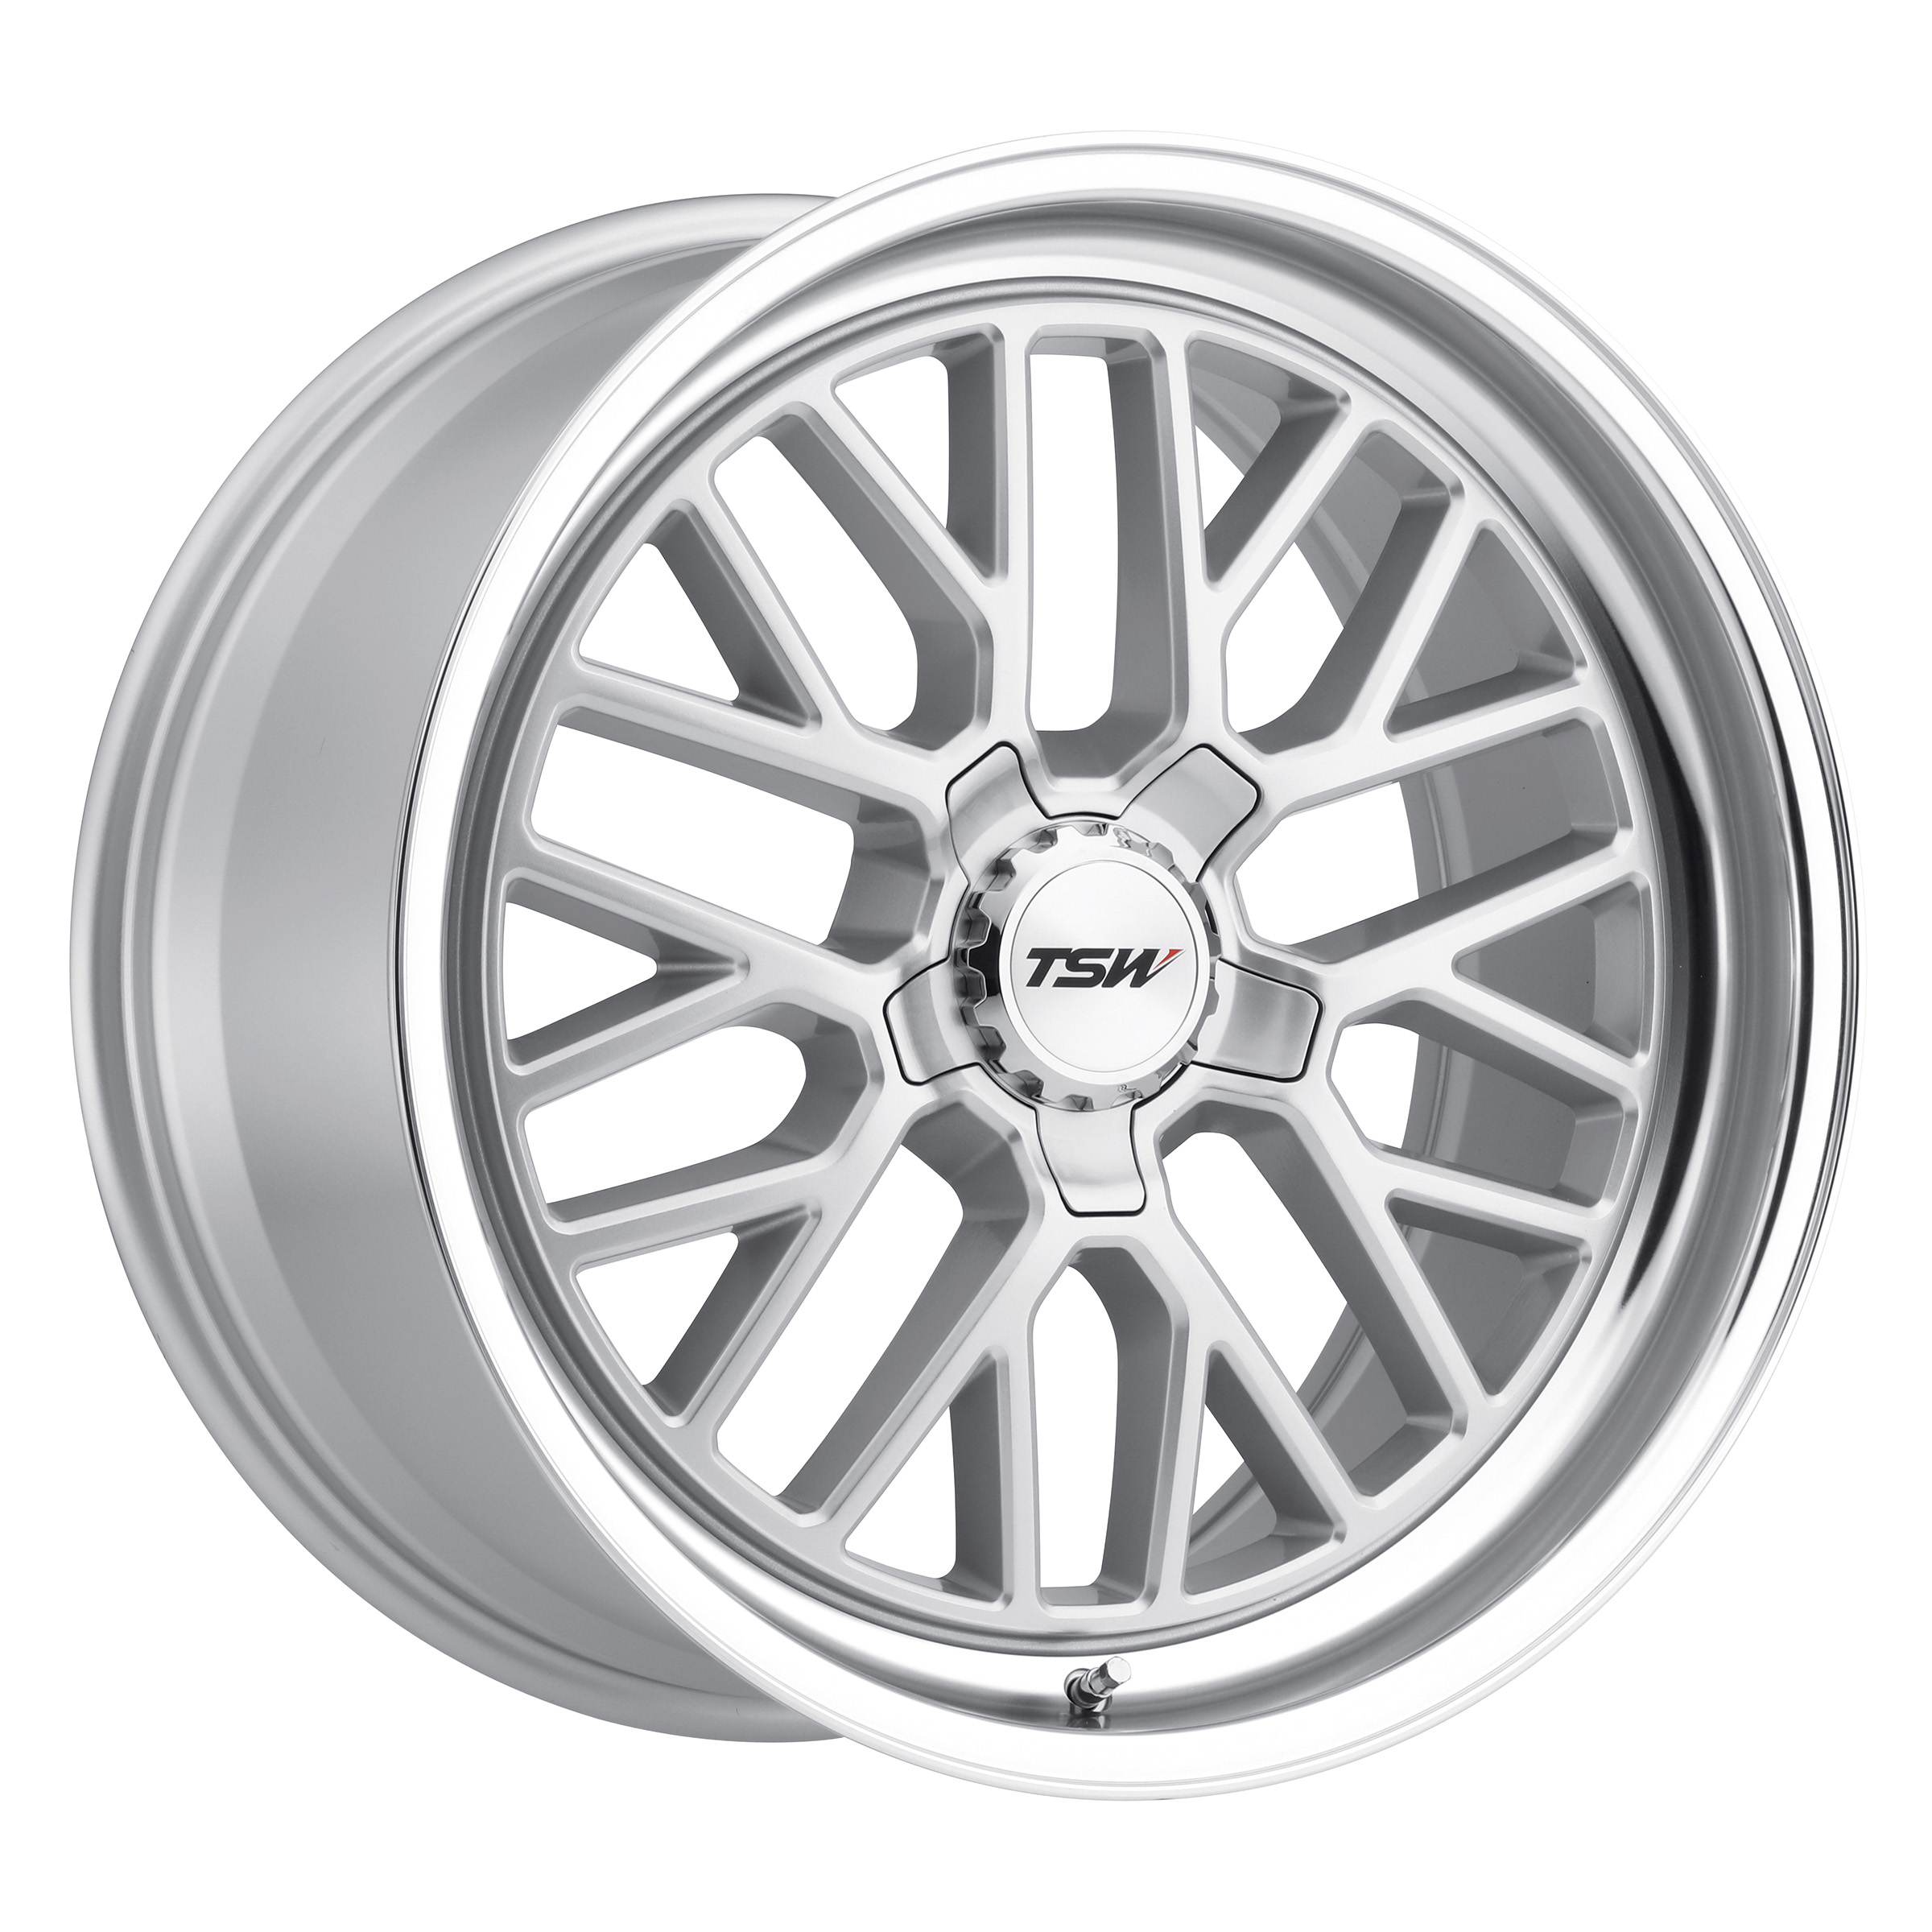 Black And Silver Mags >> Hockenheim S Alloy Wheels by TSW